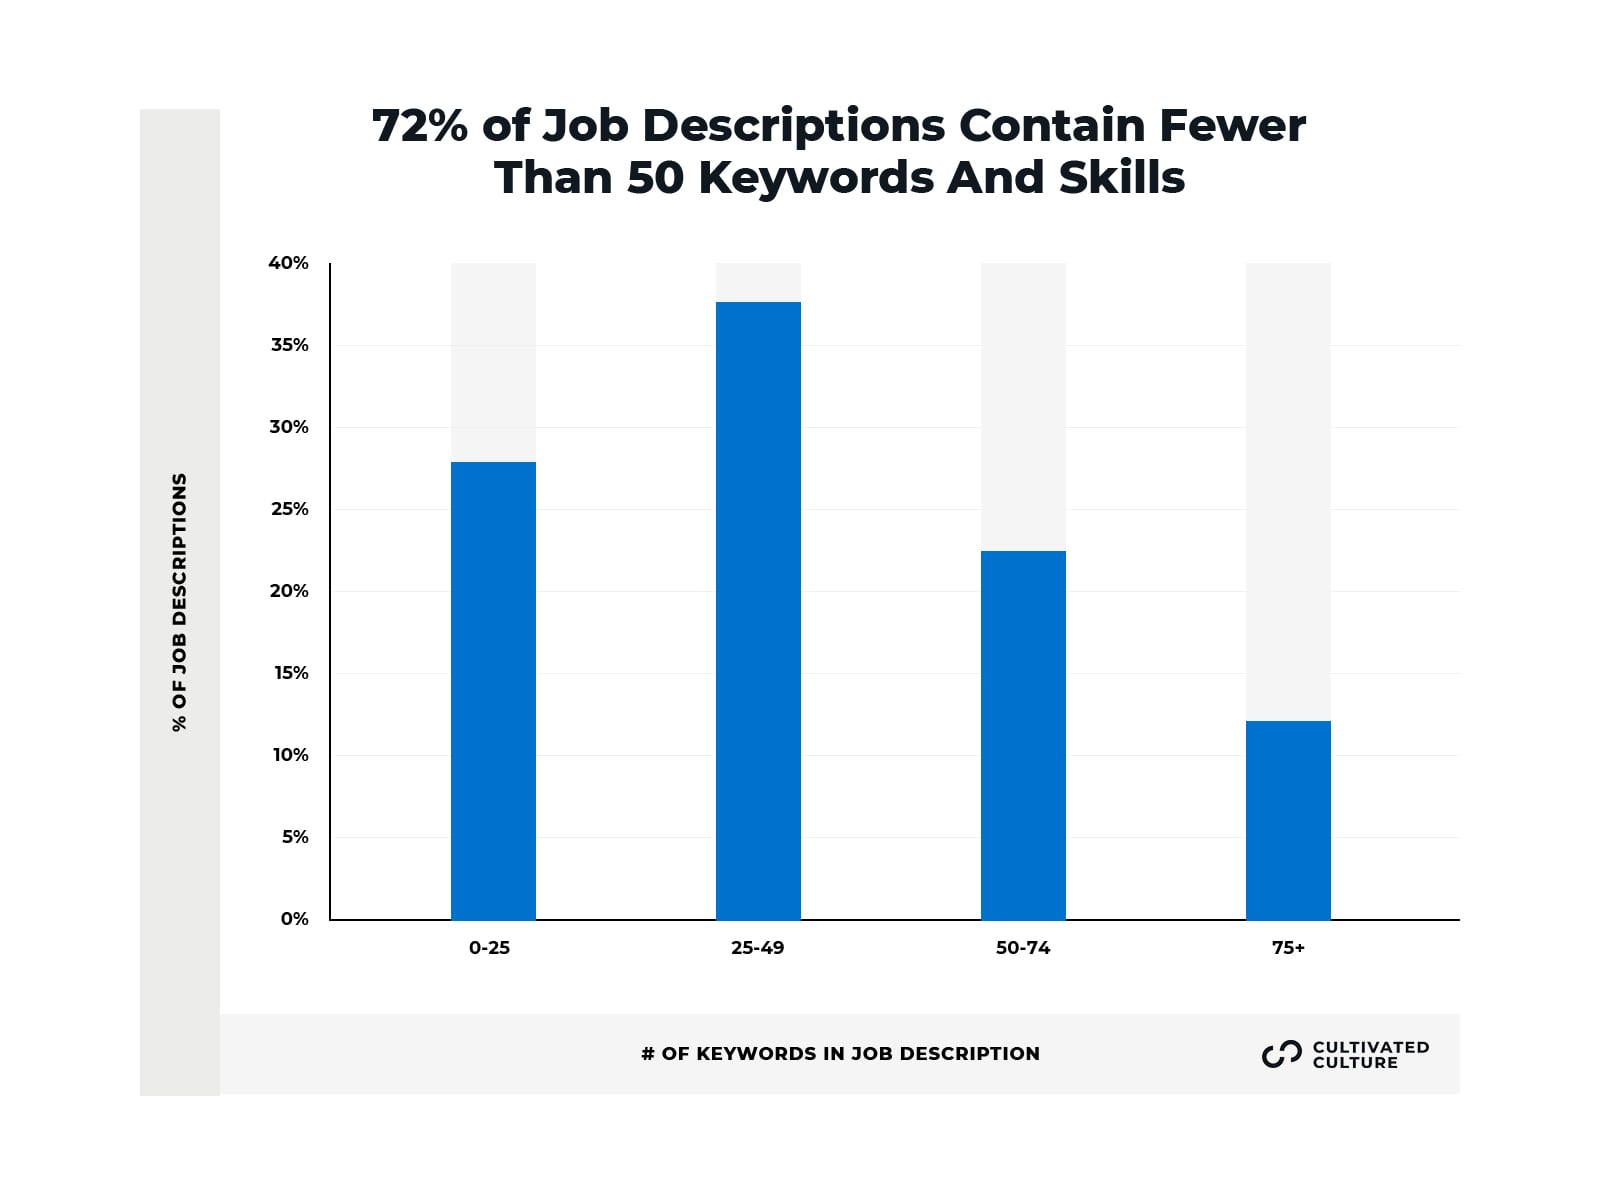 Keyword Frequency In Job Descriptions - Cultivated Culture